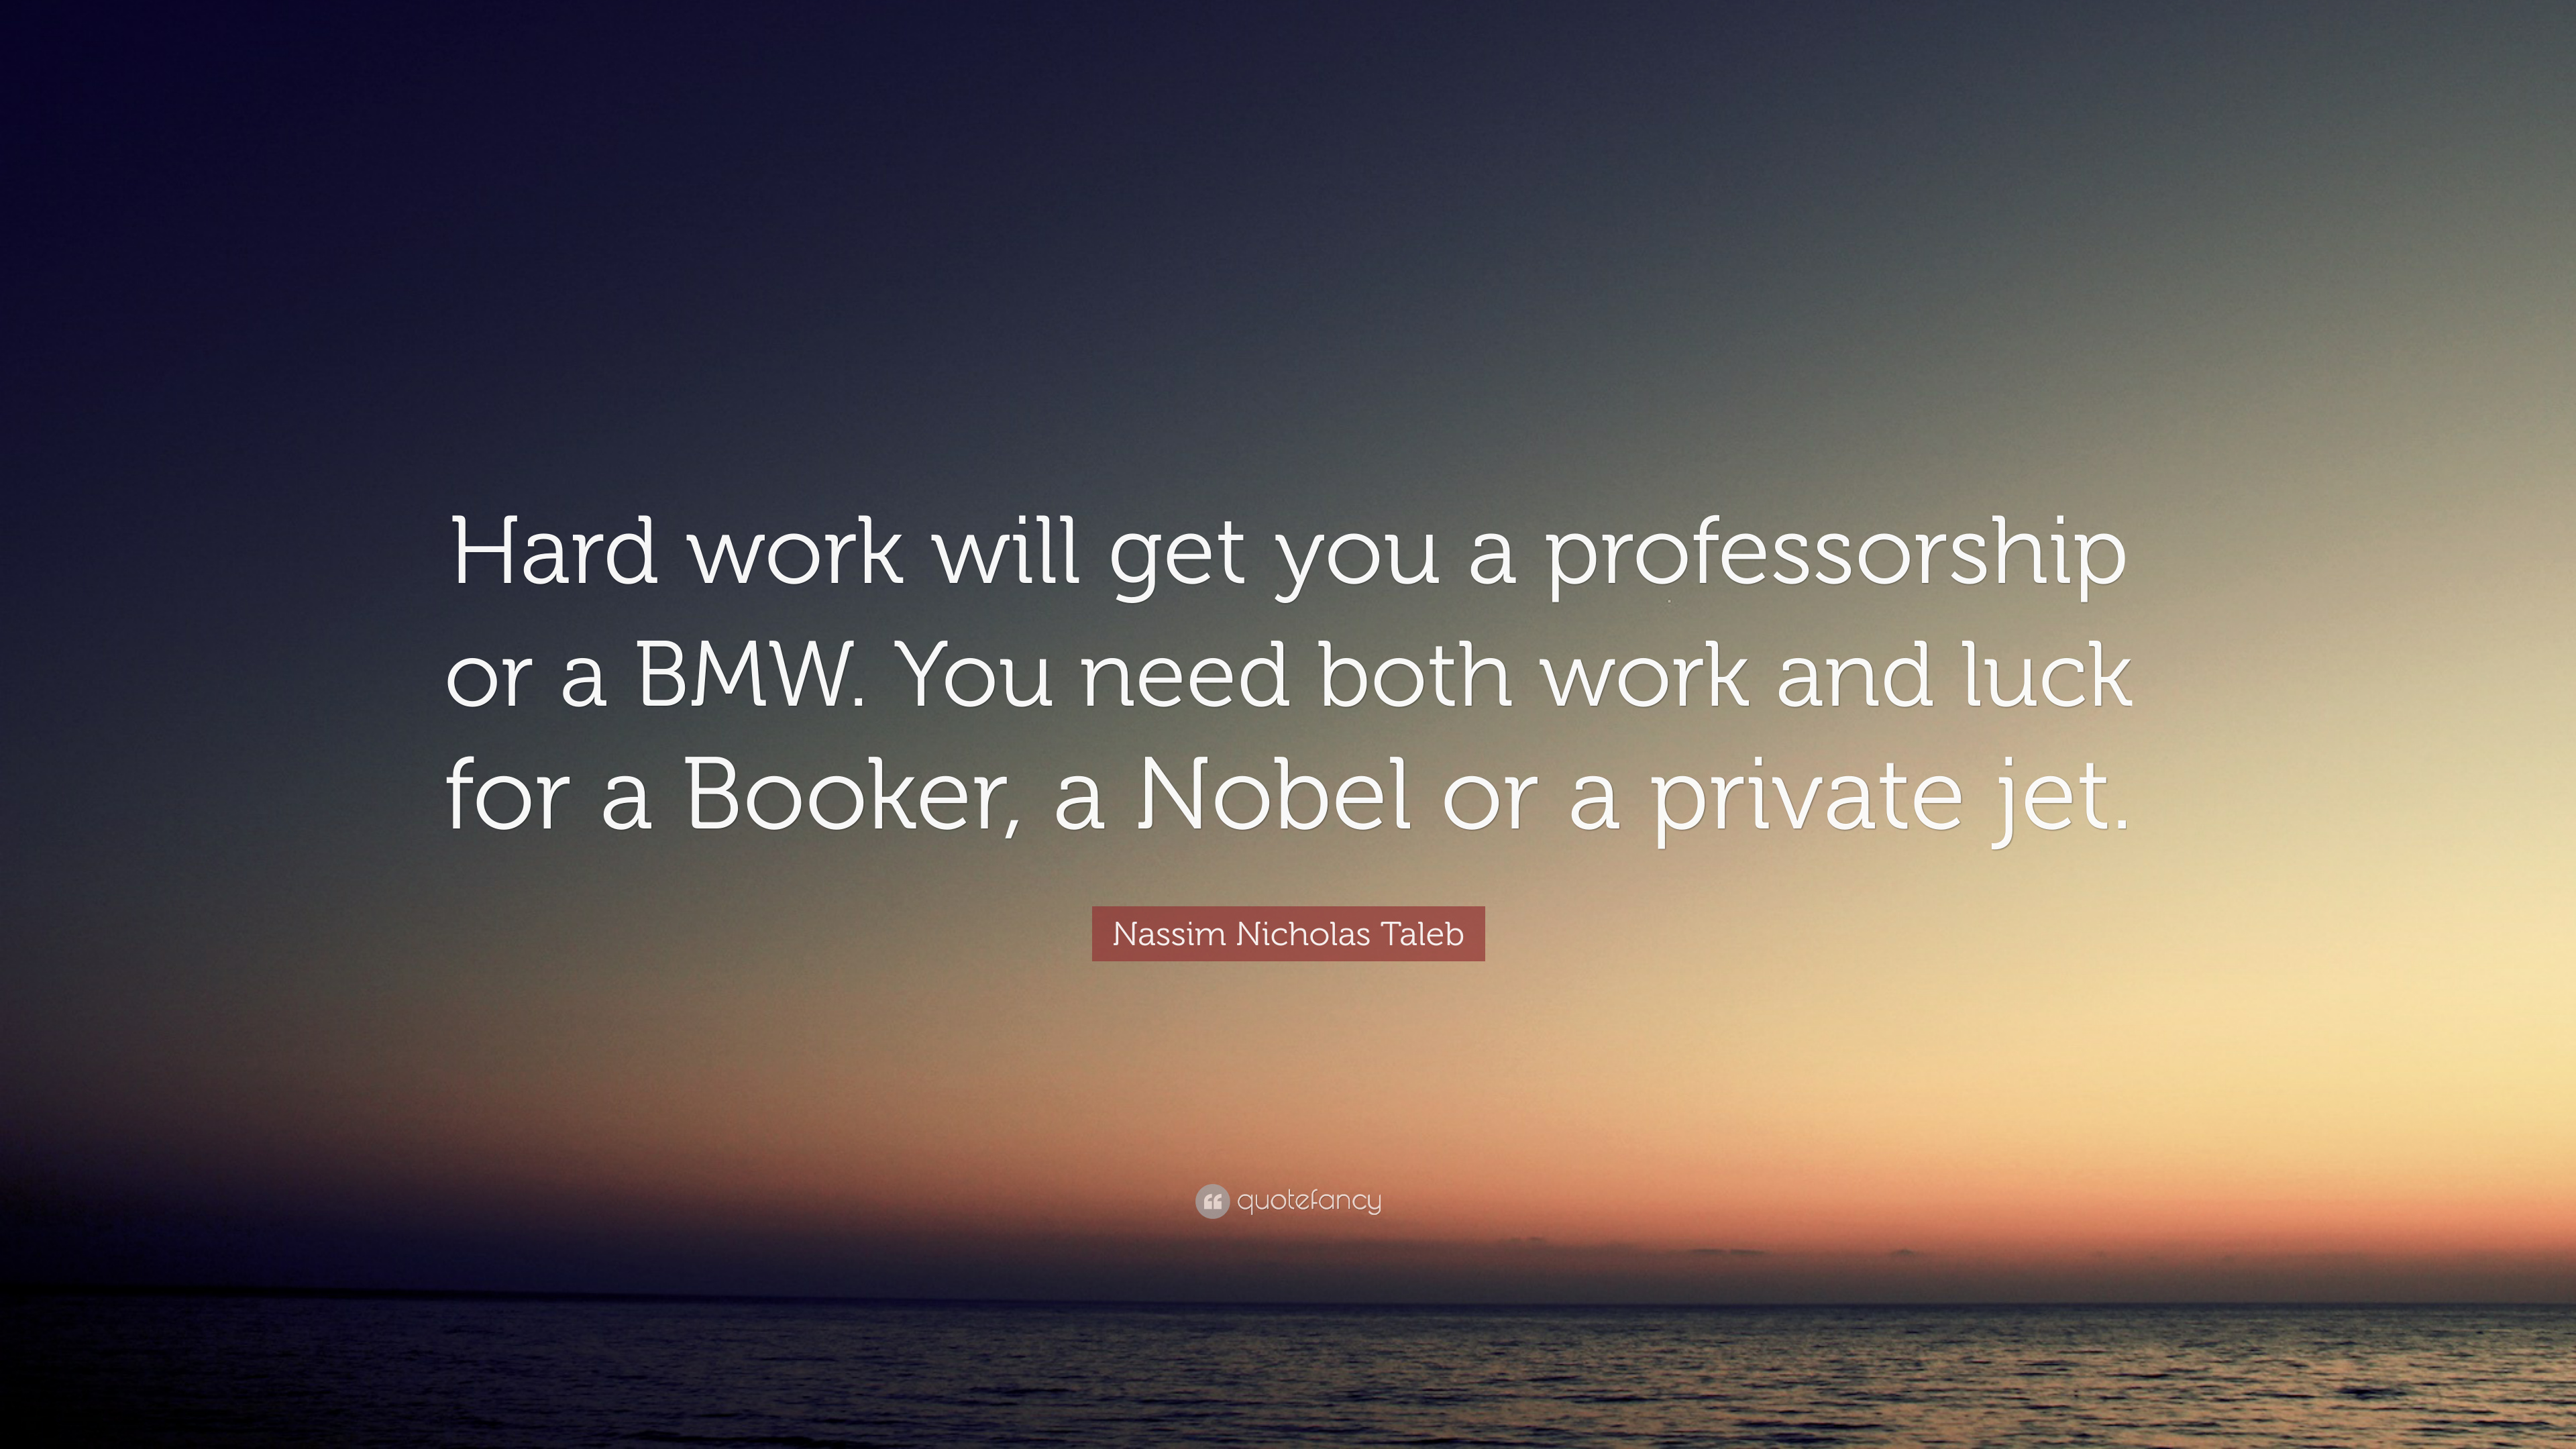 Quotes For Hard Work | Nassim Nicholas Taleb Quote Hard Work Will Get You A Professorship